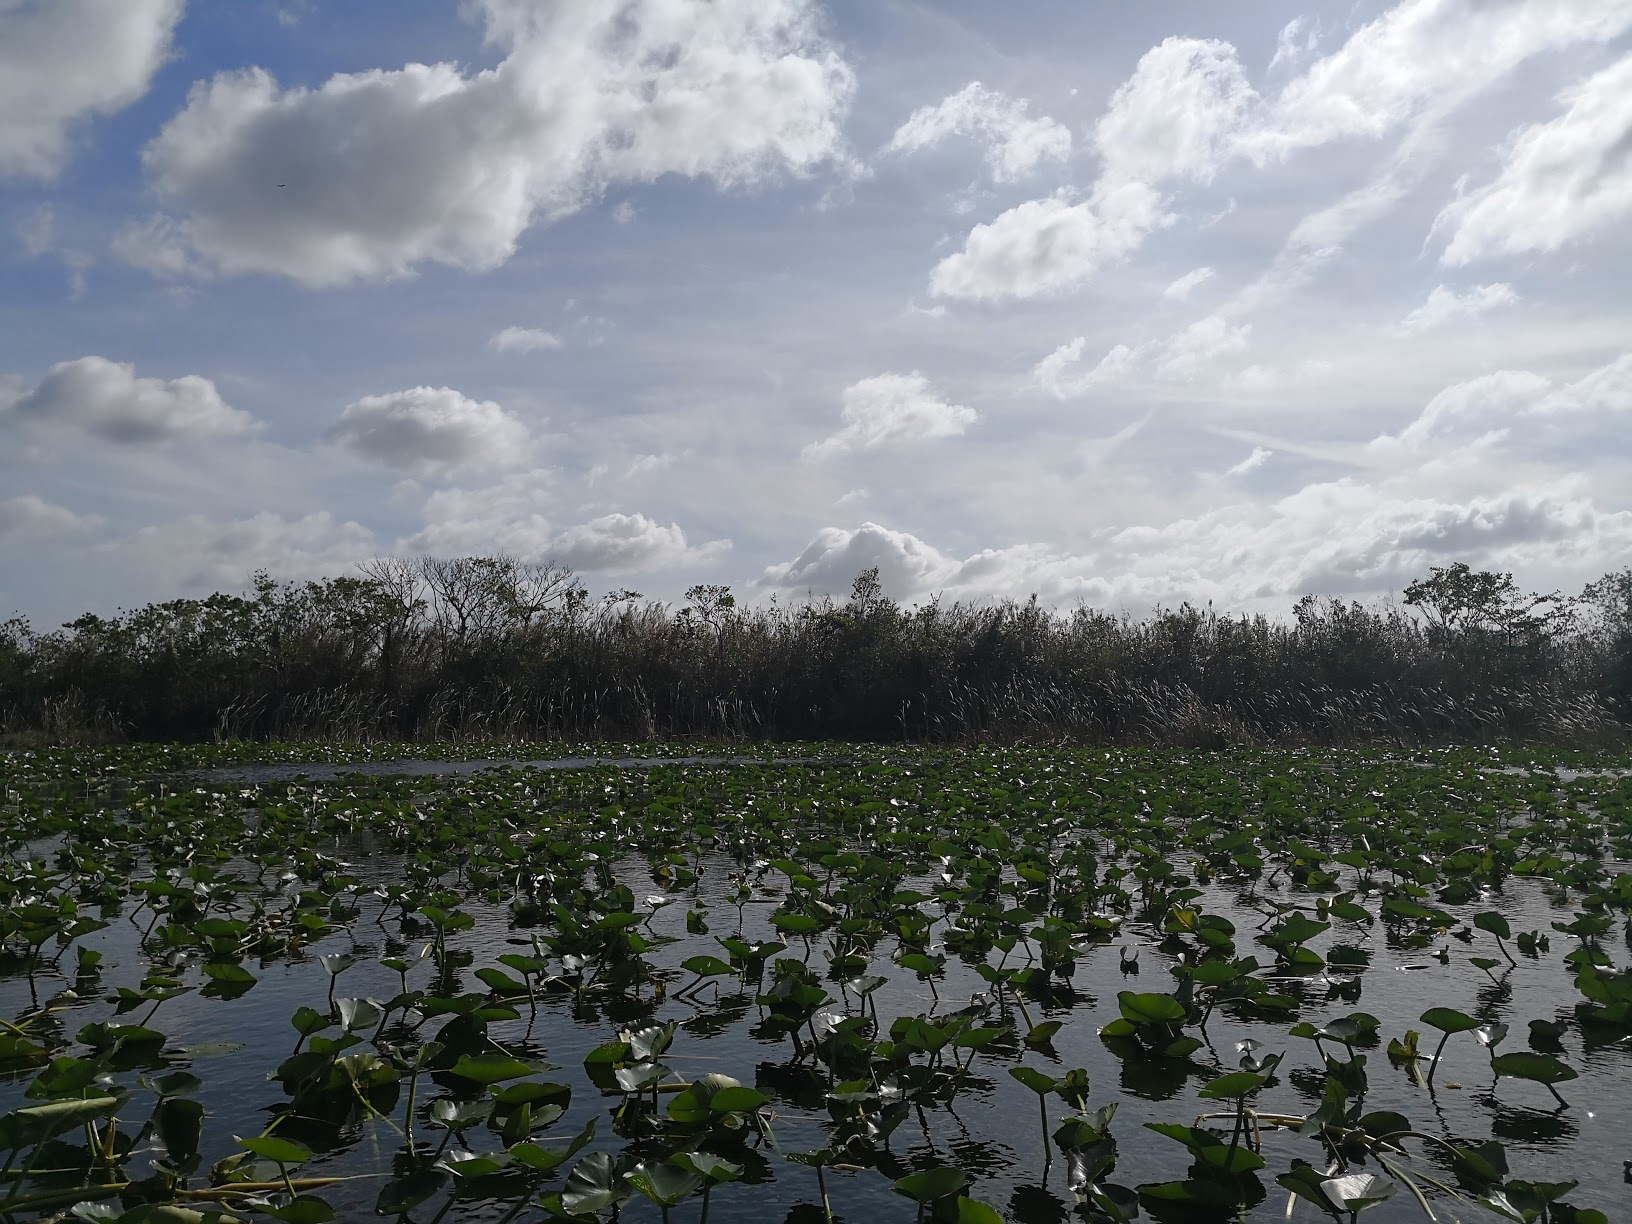 The Everglades is actually stunning if you go alone.